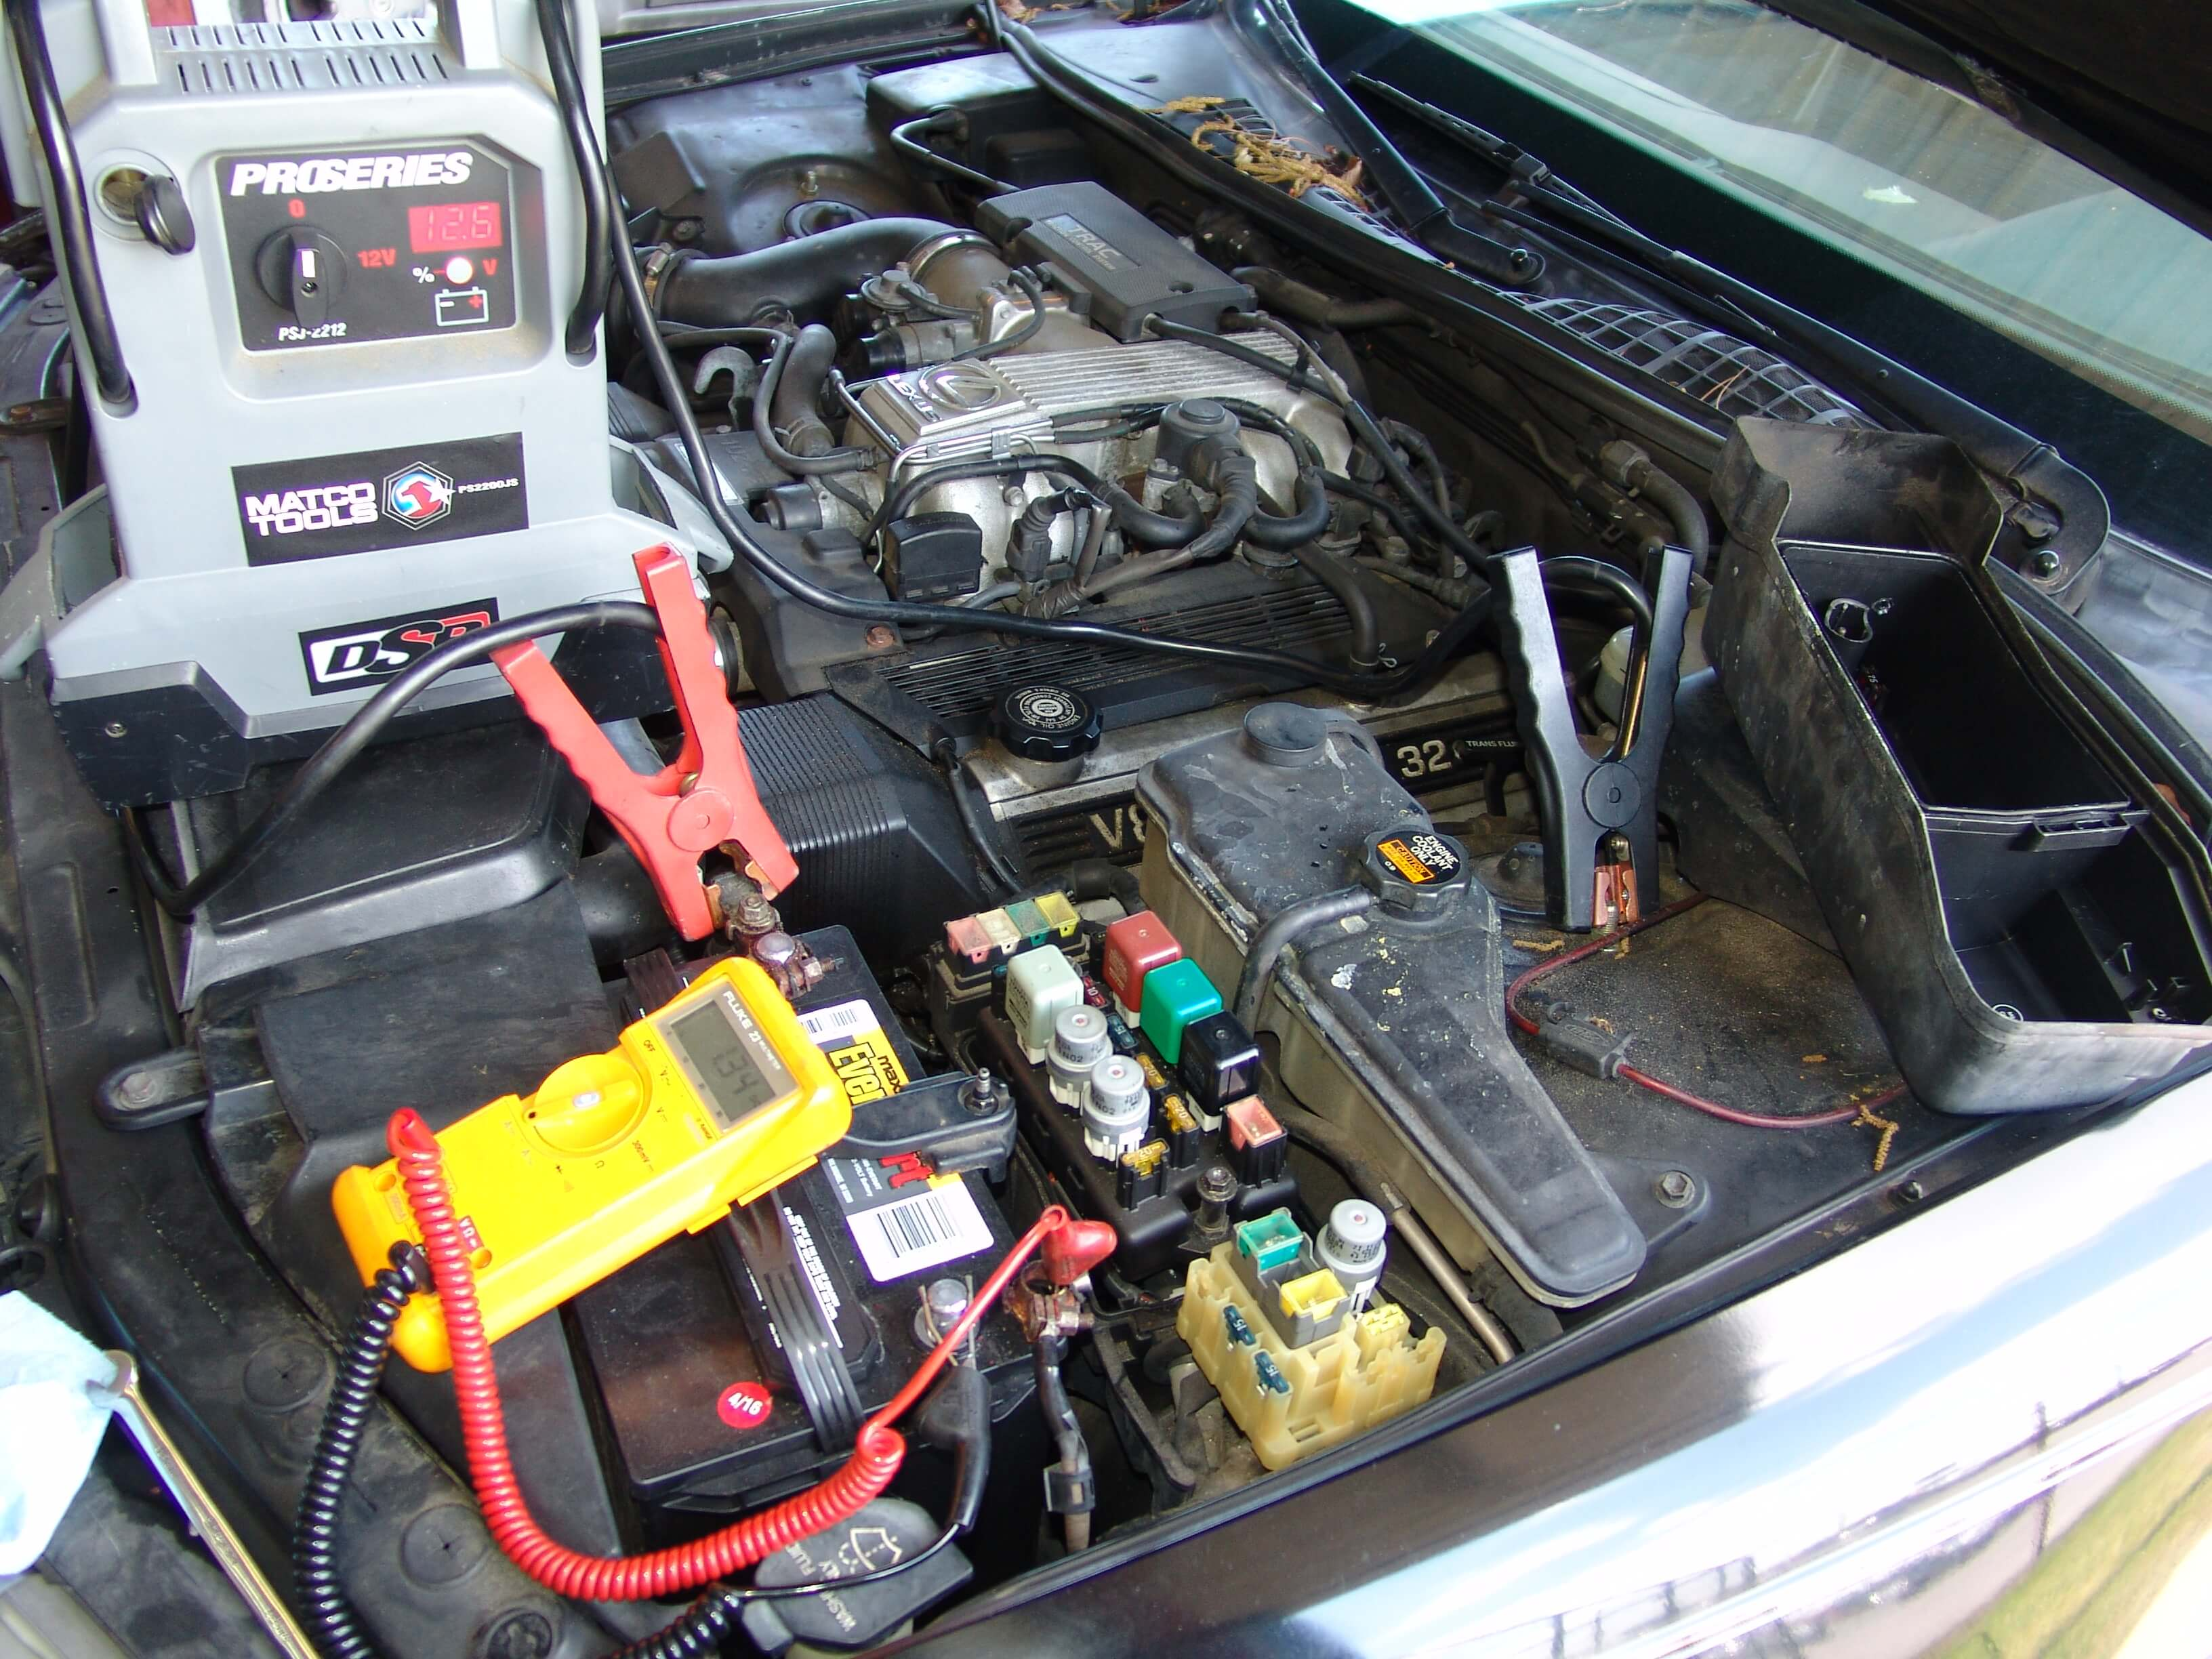 Sparkys Answers 1994 Lexus Ls400 Battery Goes Dead Ls 400 Fuse Box Relay Once The Meter Is Properly Connected Jump Must Be Turned Off And Disconnected From System